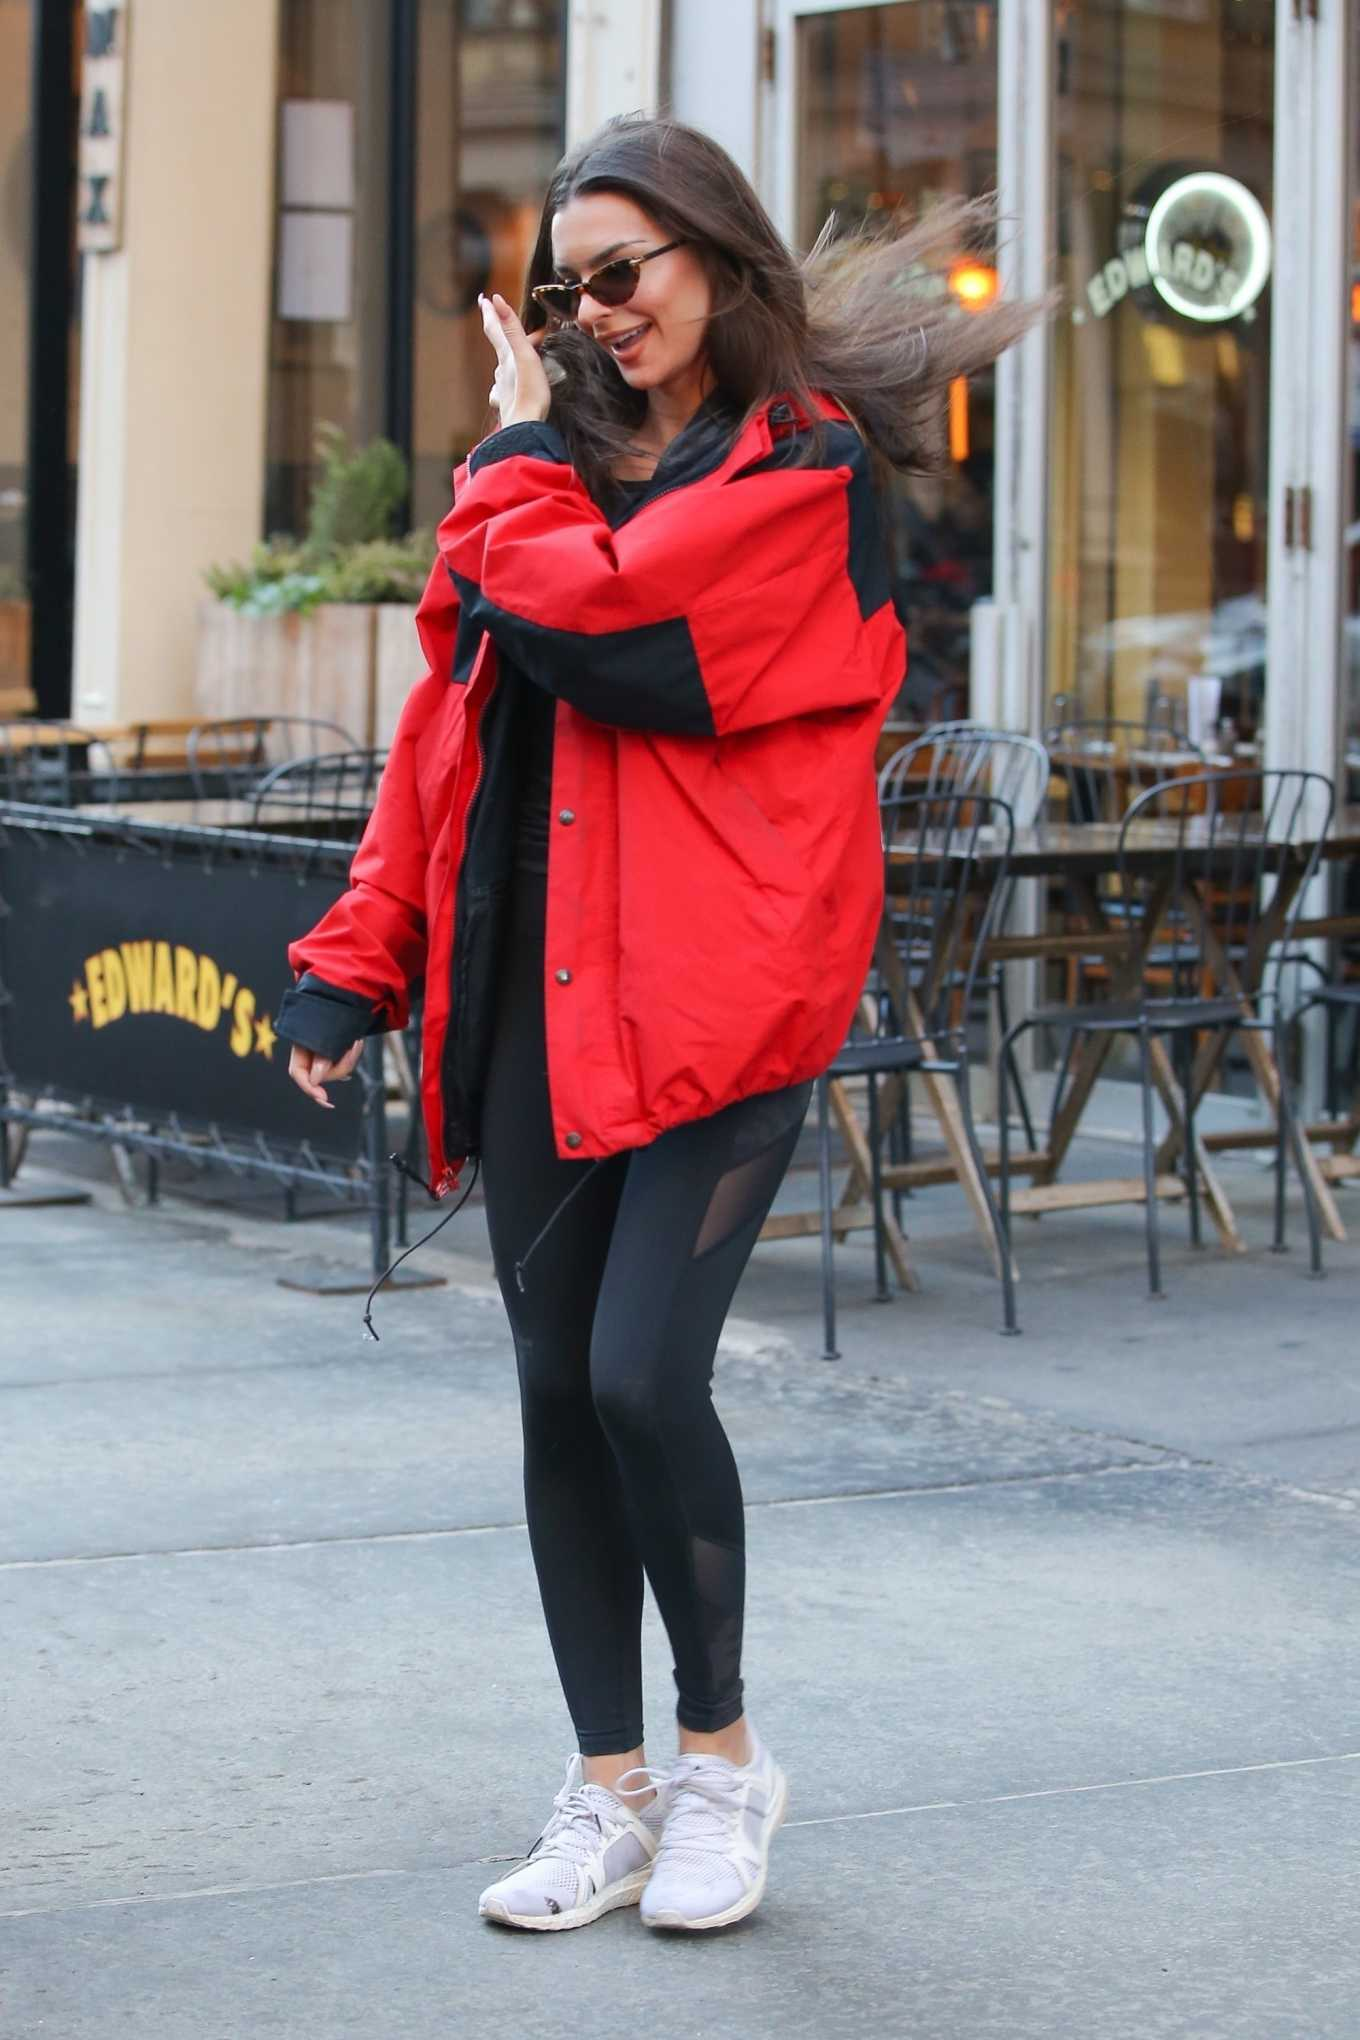 Emily Ratajkowski Heads to the Strong By Zumba Event in New York